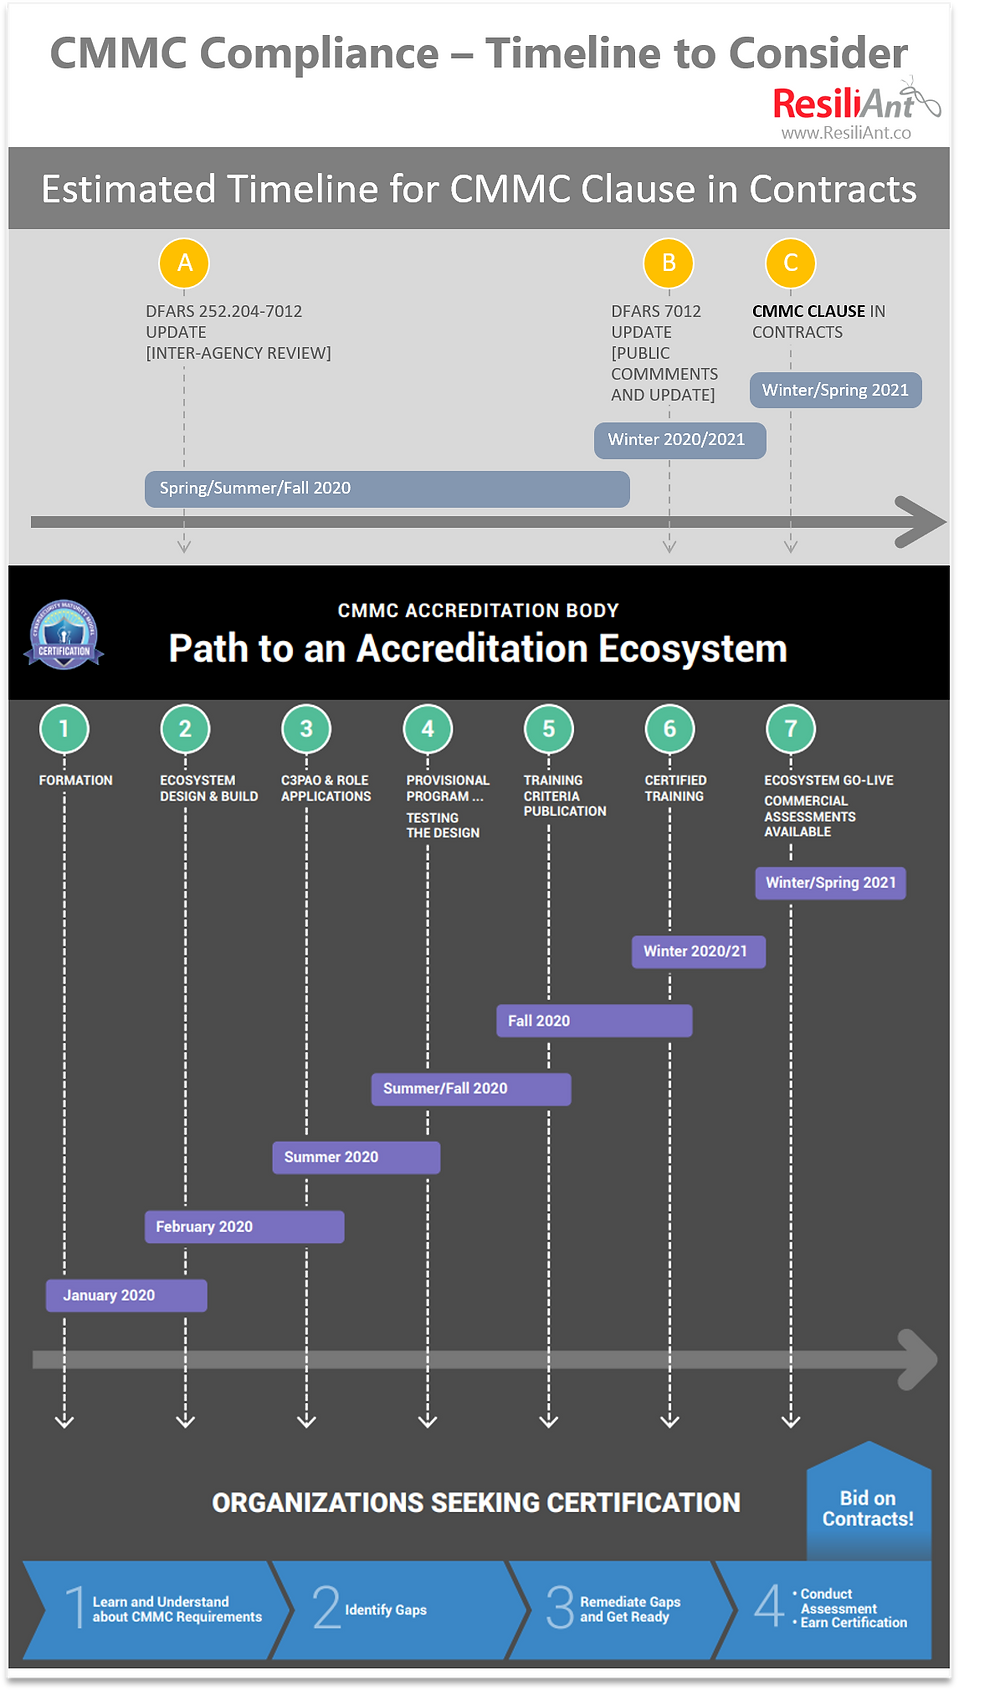 CMMC Compliance Timeline to Consider by ResiliAnt